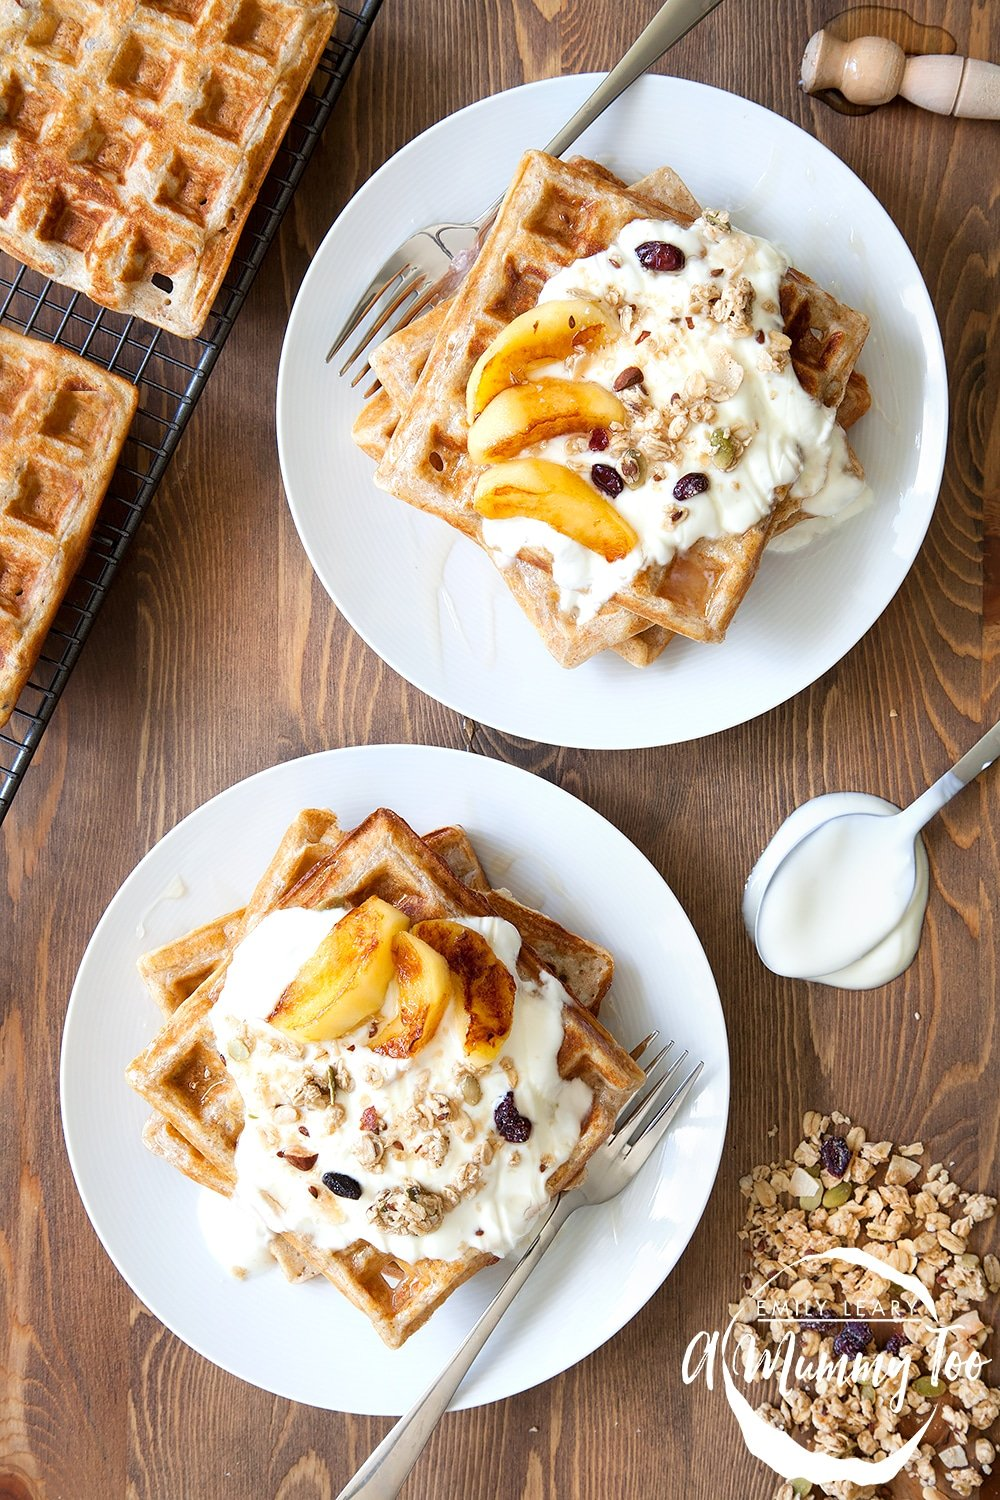 Granola waffles topped with coconut fried apples - a deliciously textured breakfast!